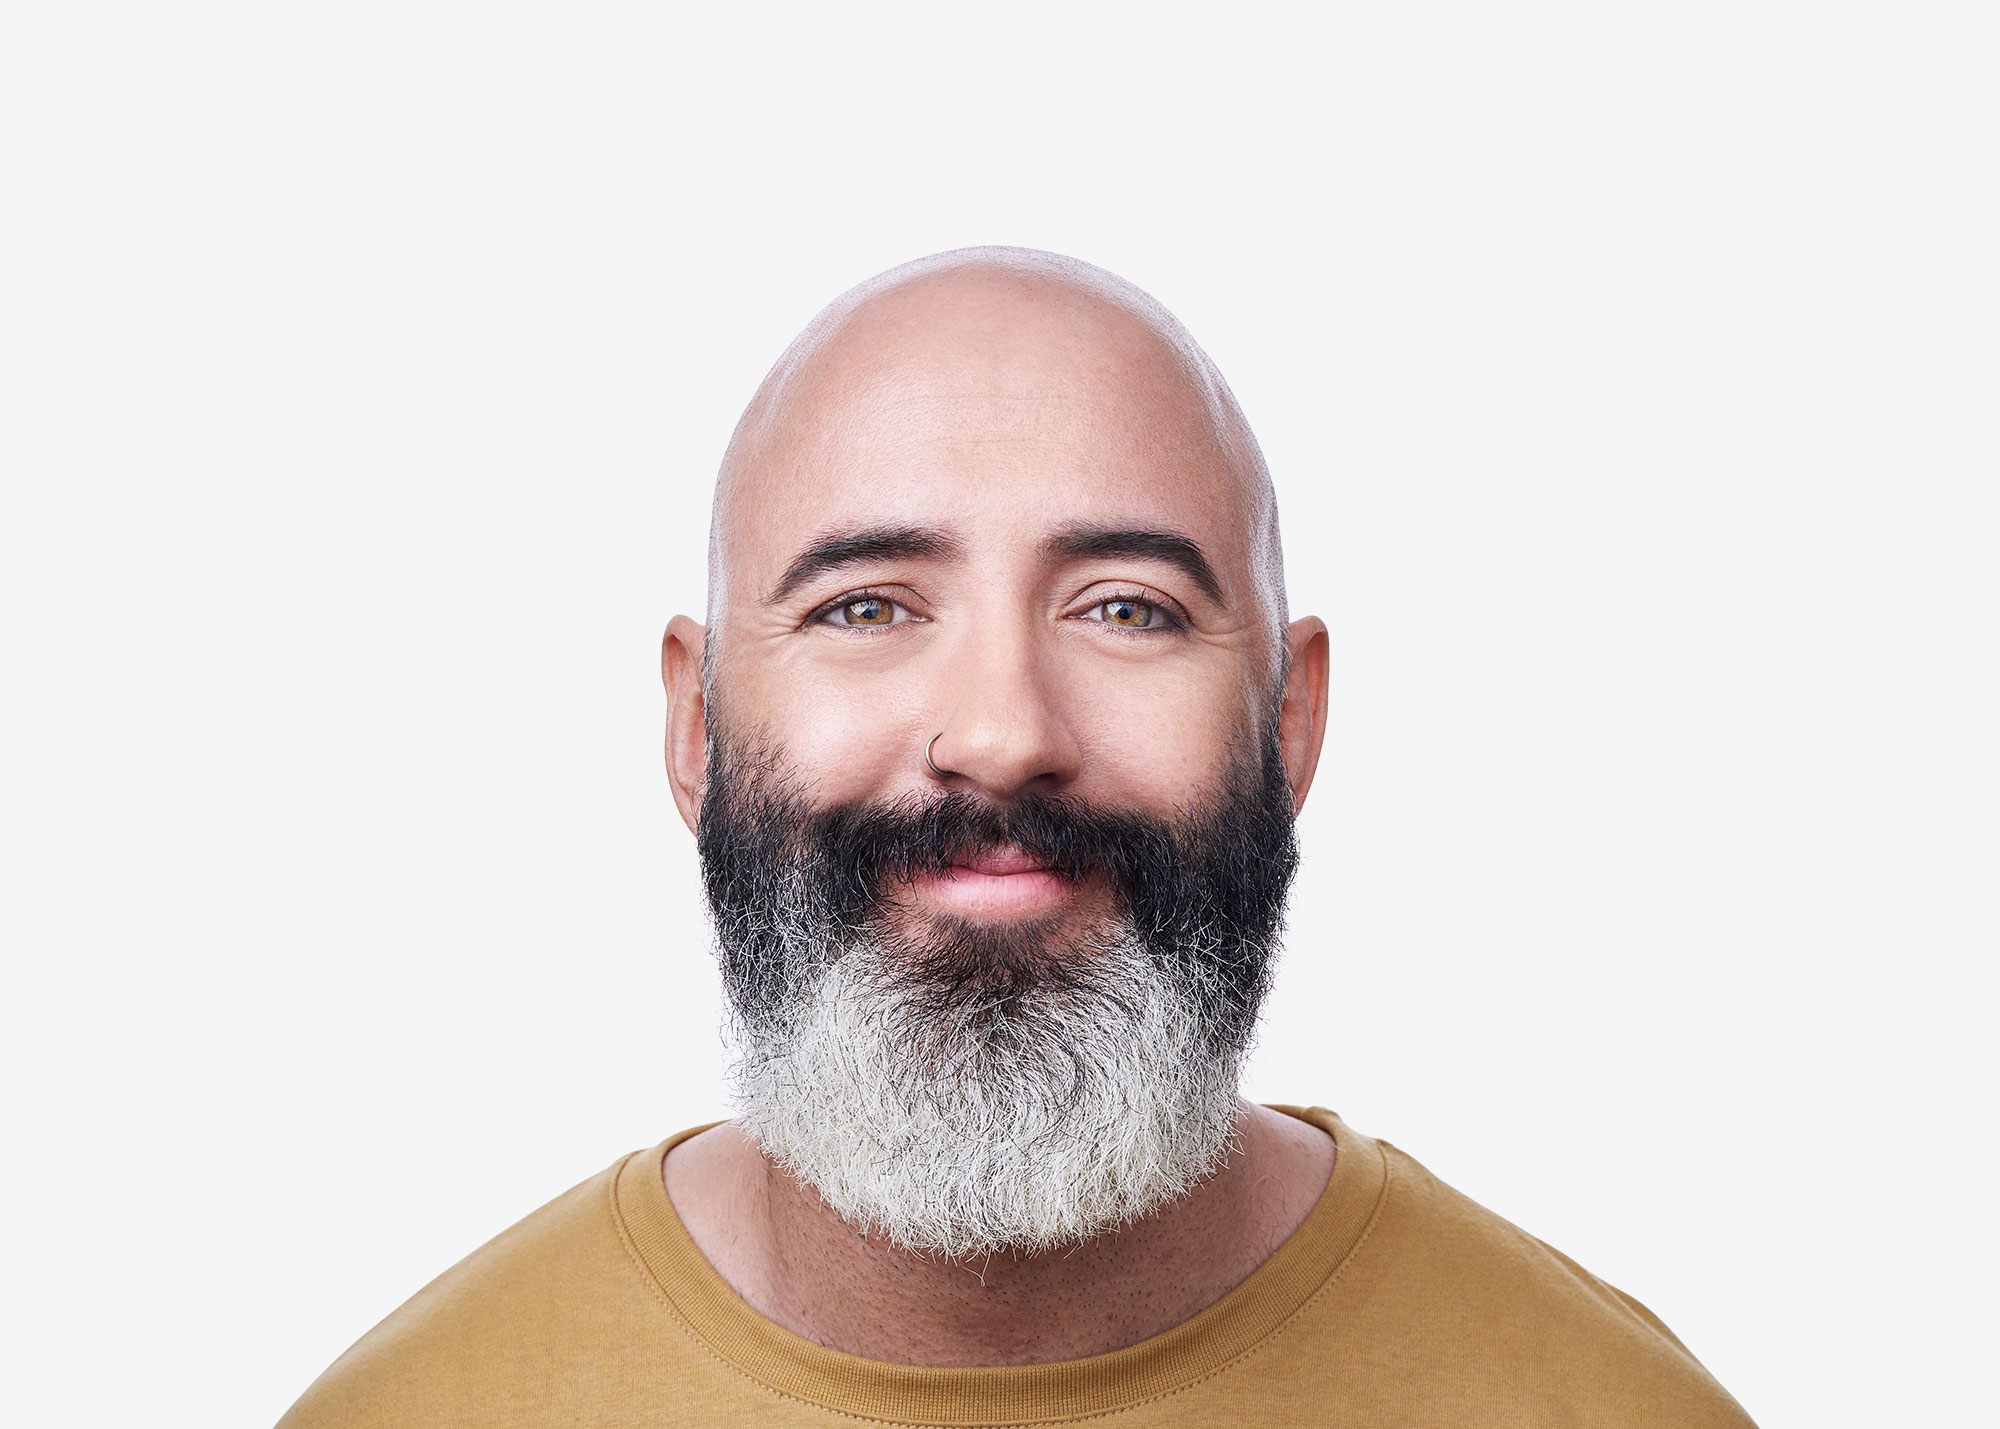 Waldo-contact-lenses-see-the-happiness-campaign-guy-big-beard-smiling-sane-seven-2000px-wide